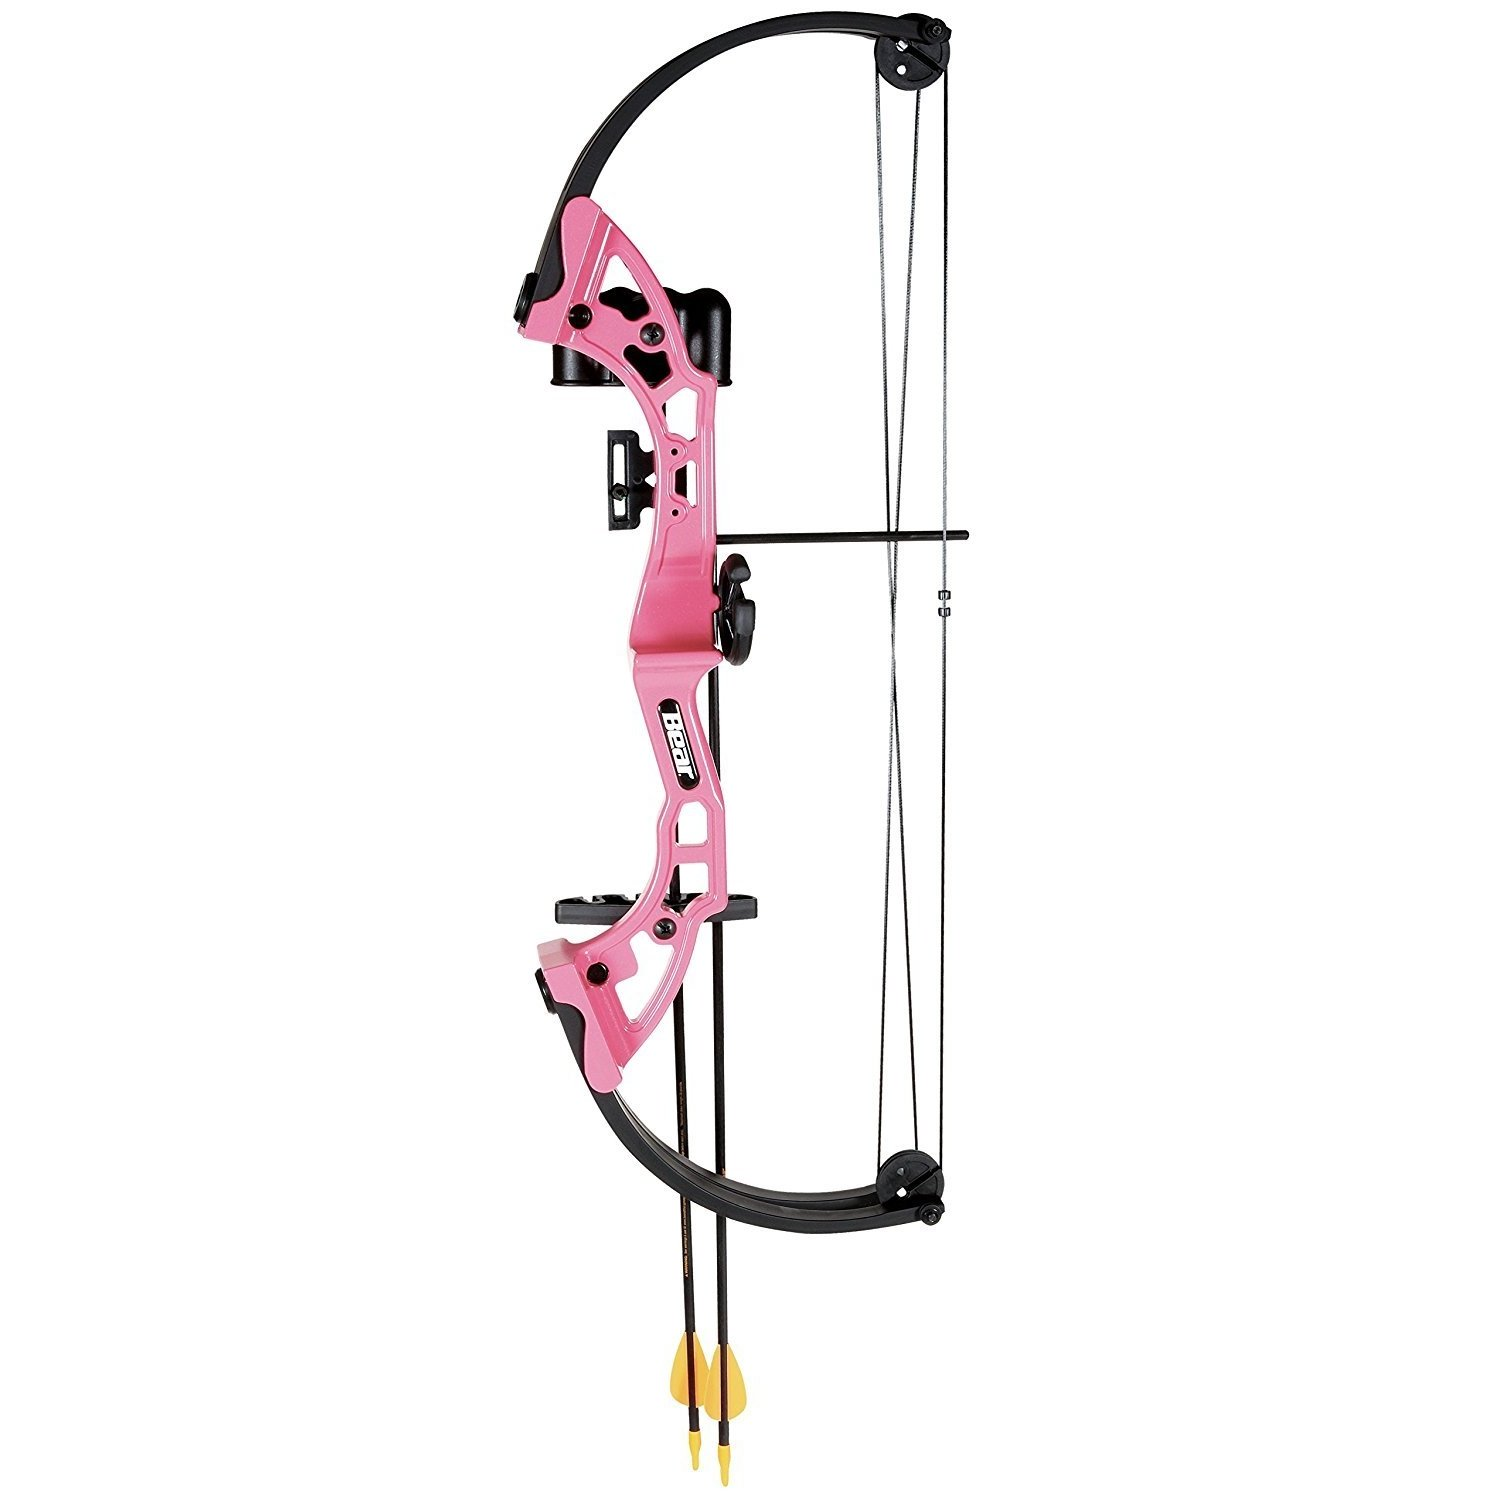 By-Ear Archery Archery Compound Bow, Pink Brave Girls Boys Compound Bow Set